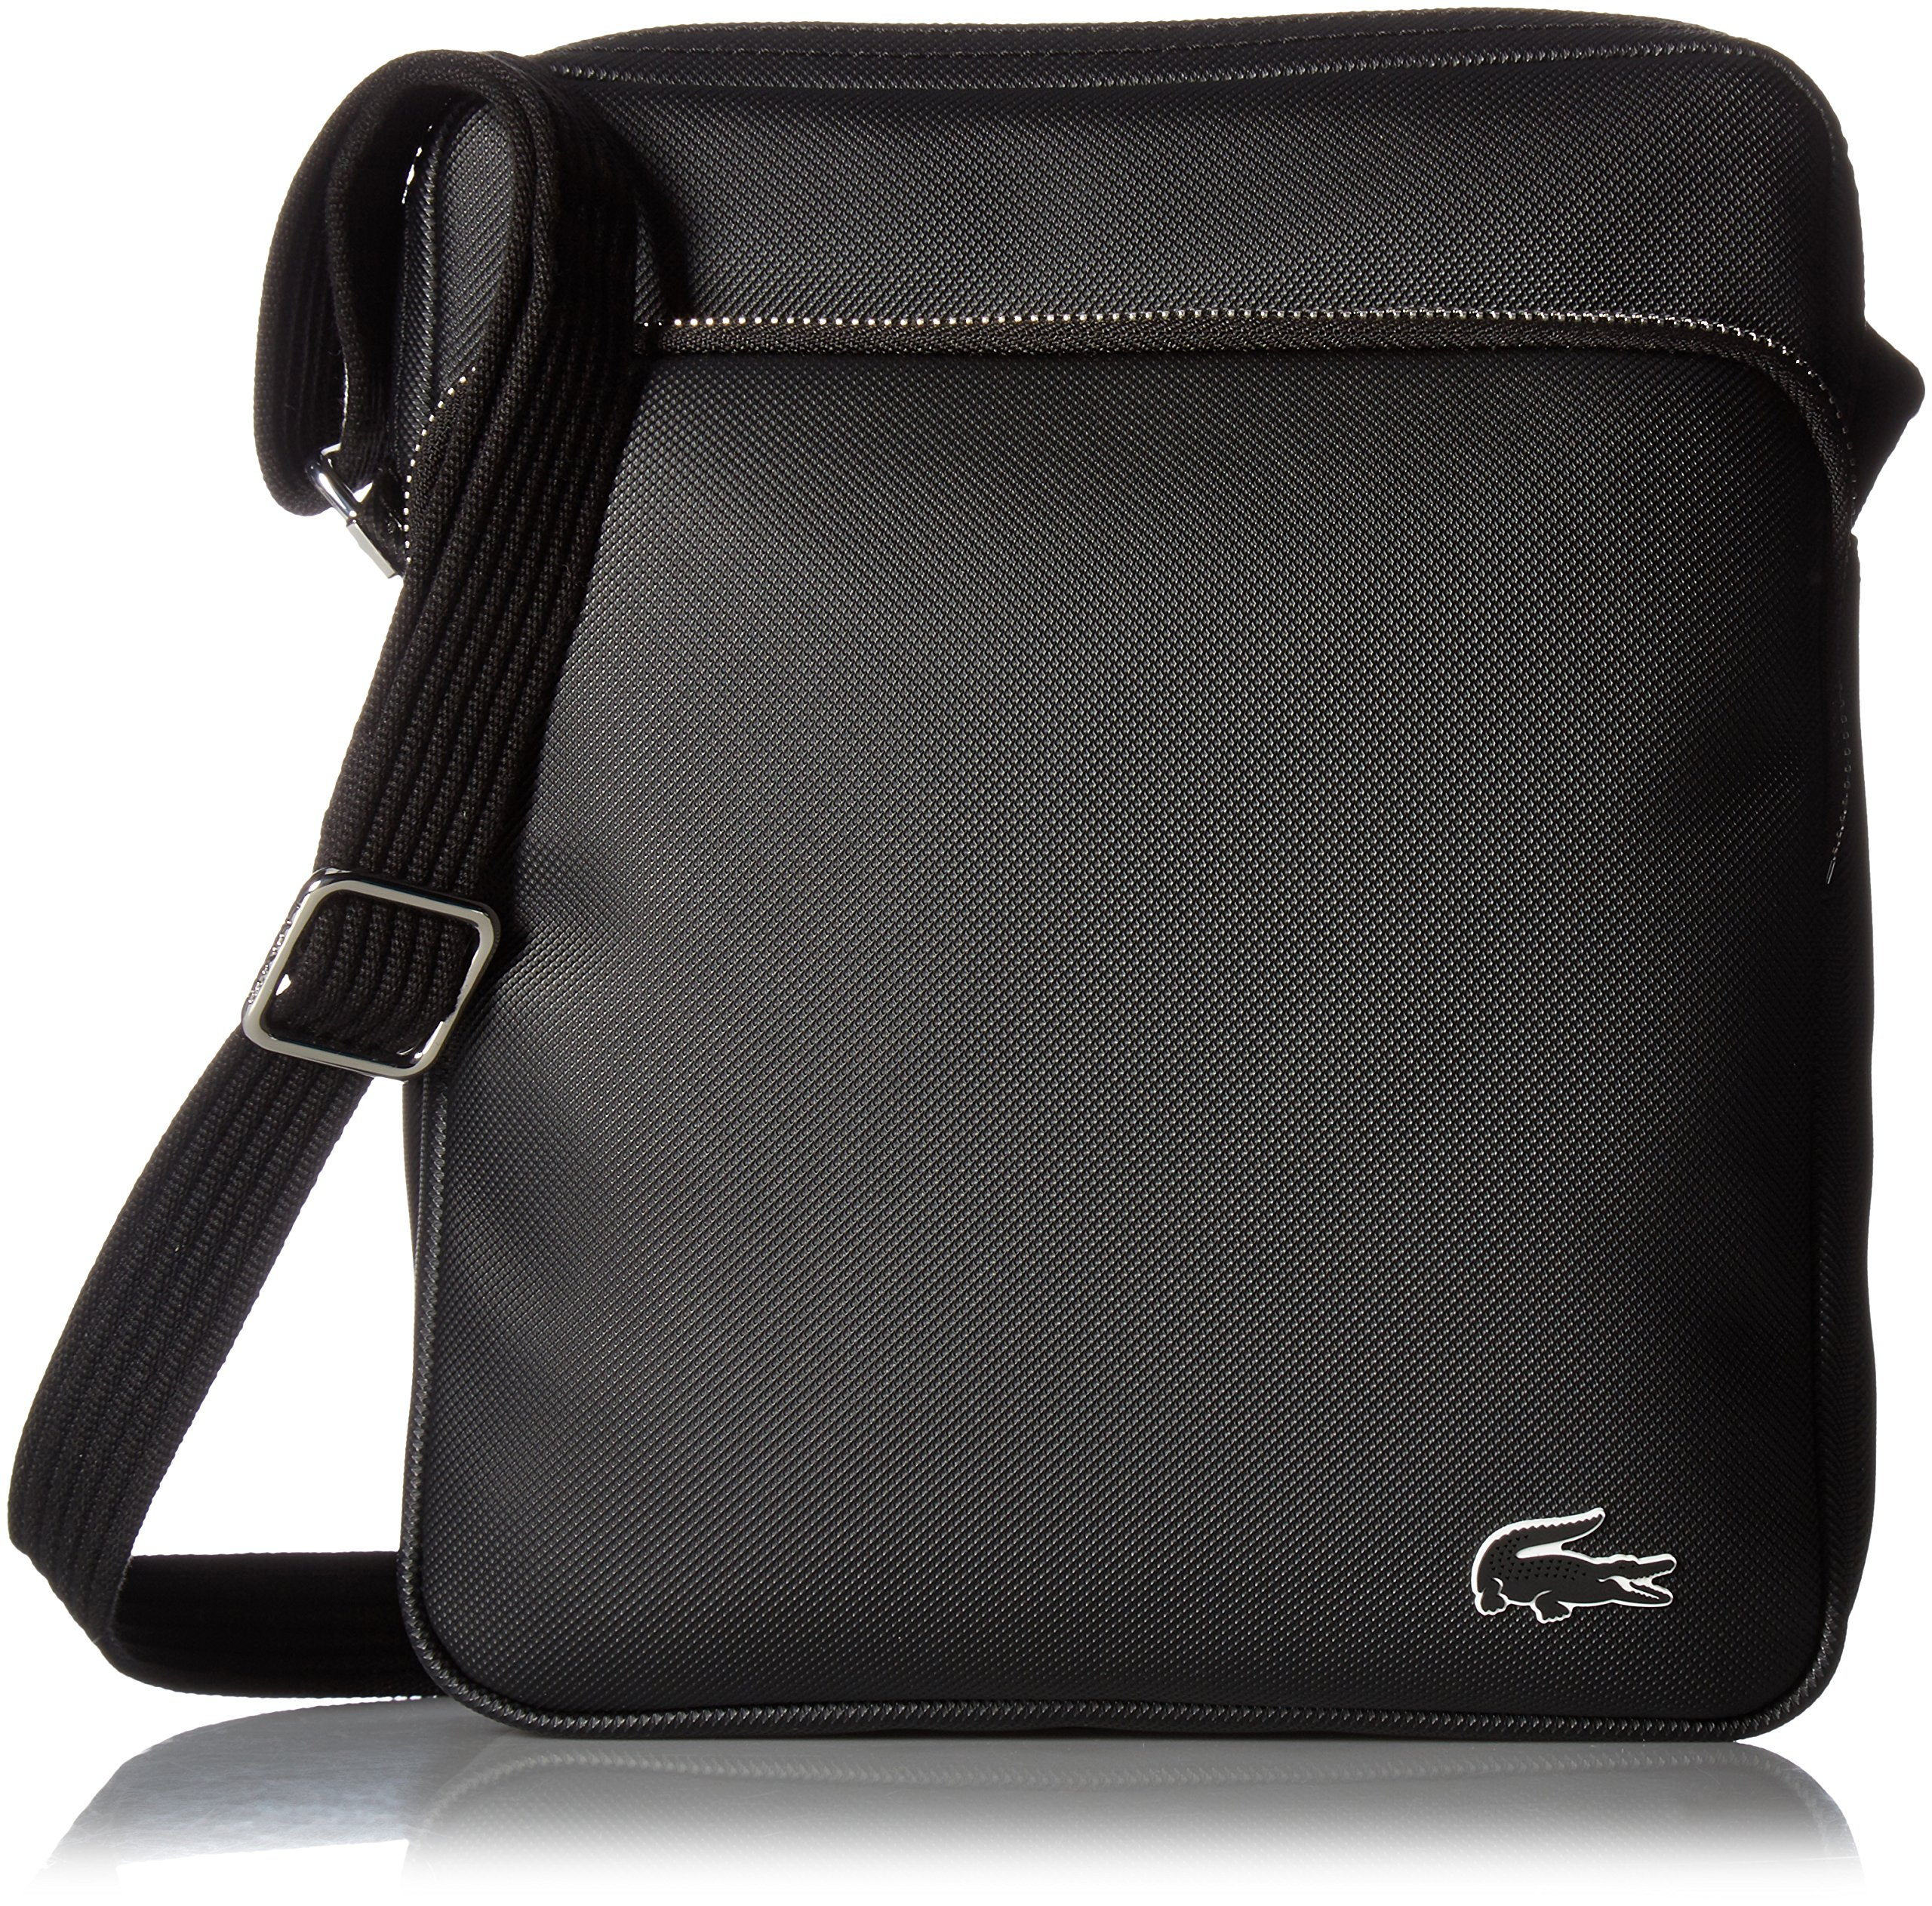 Lacoste Men's Crossover Bag with Pockets, Black